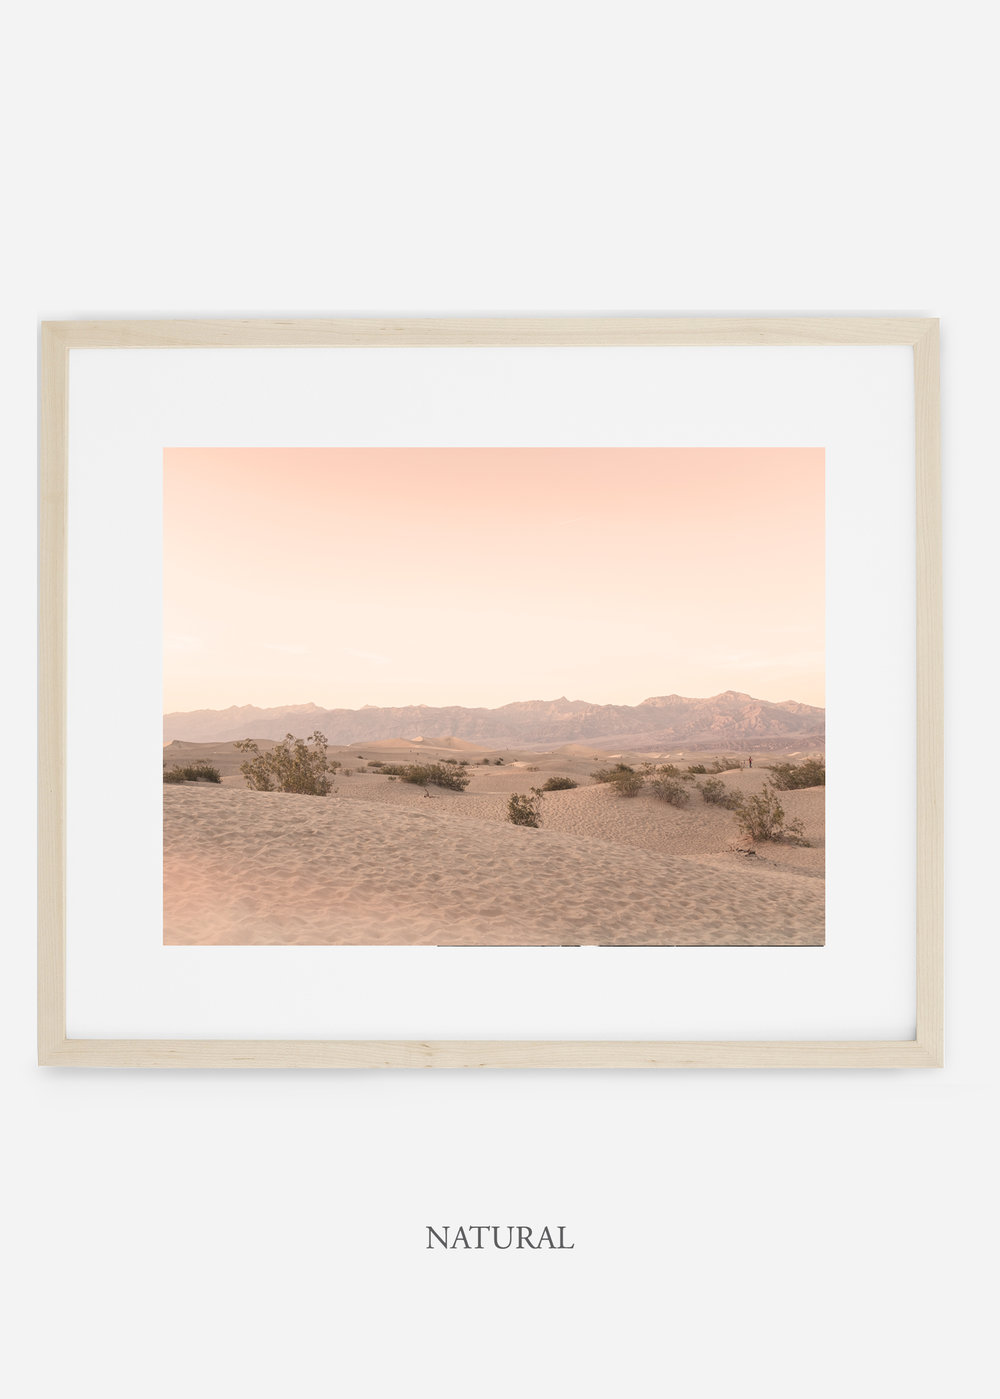 wildercalifornia_naturalframe_deathvalley_4_minimal_desert_art_interiordesign_blackandwhite.jpg